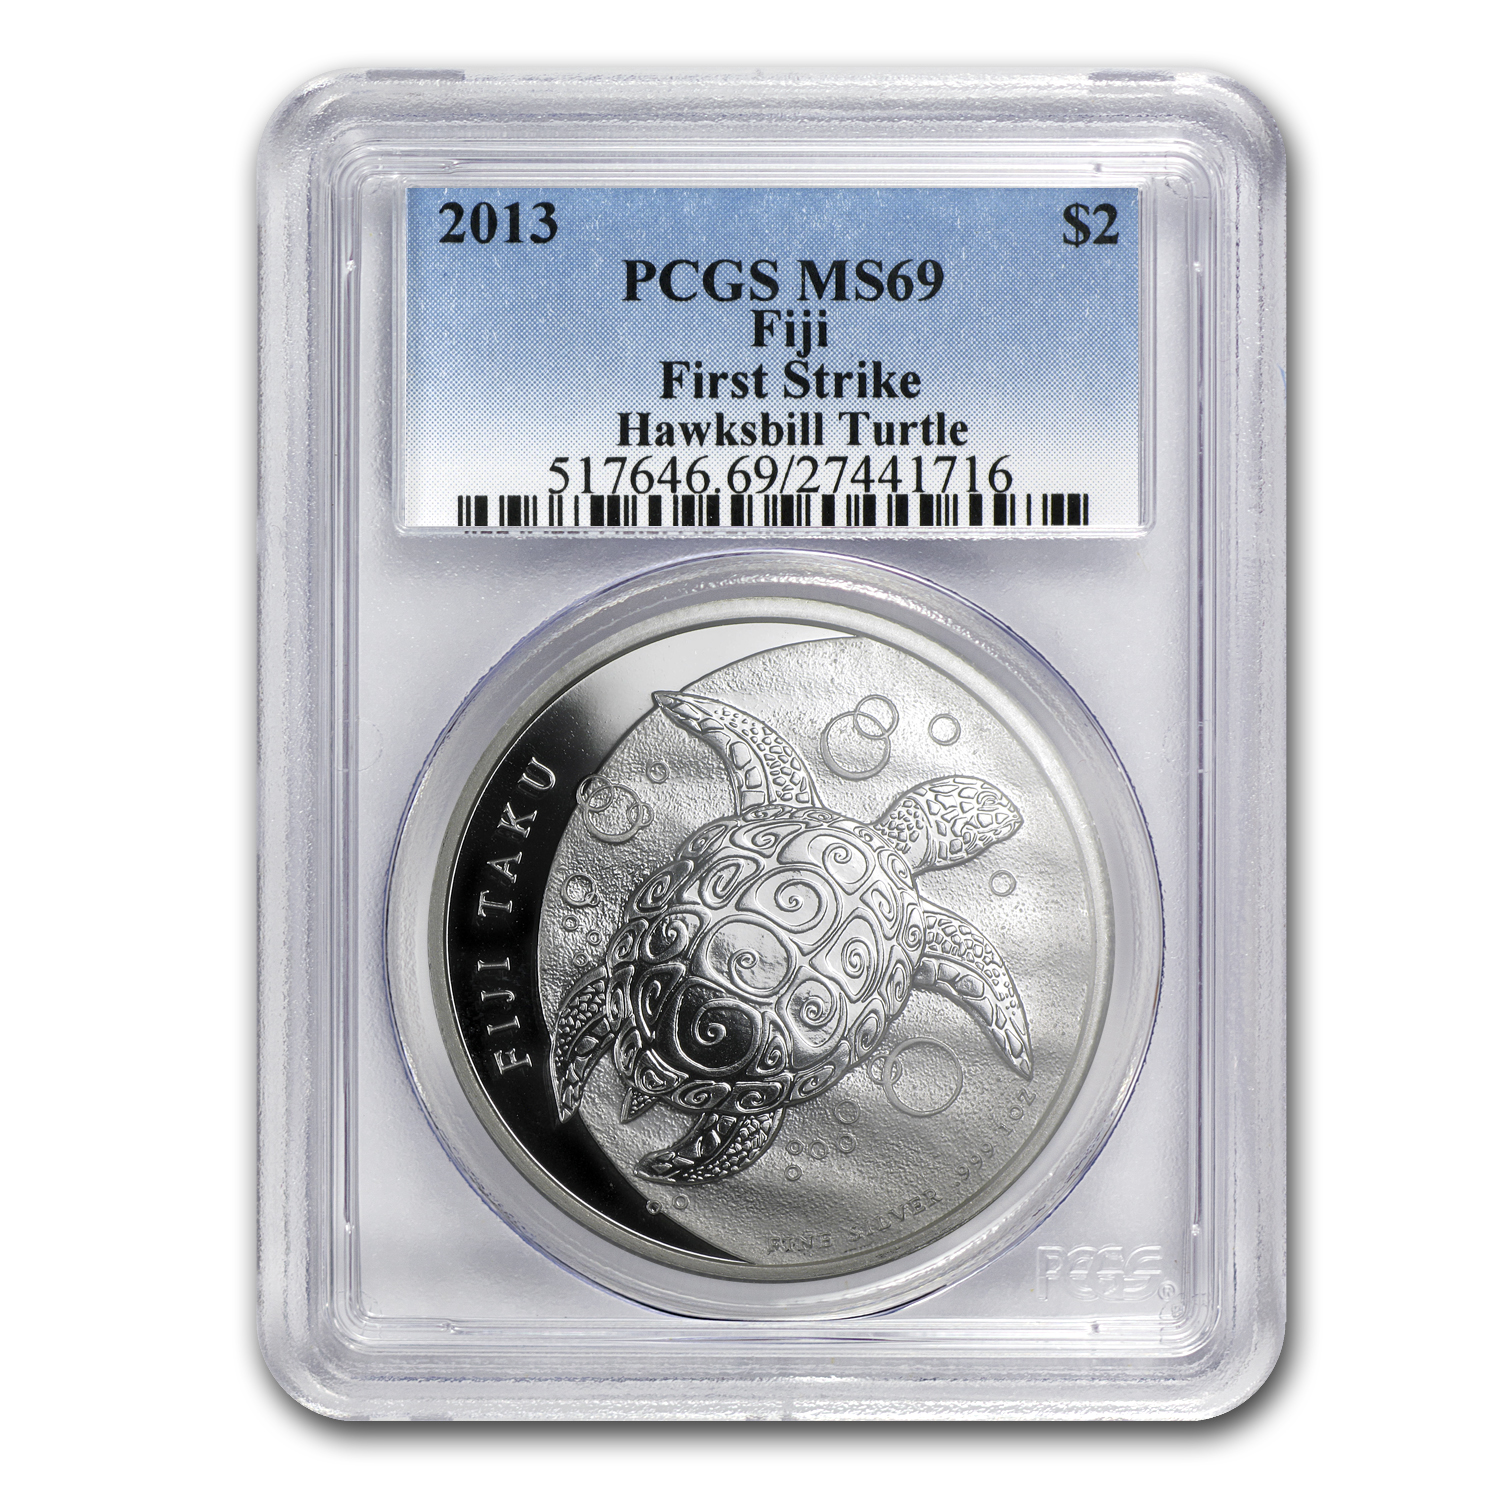 2013 Fiji 1 oz Silver $2 Taku MS-69 PCGS (First Strike)